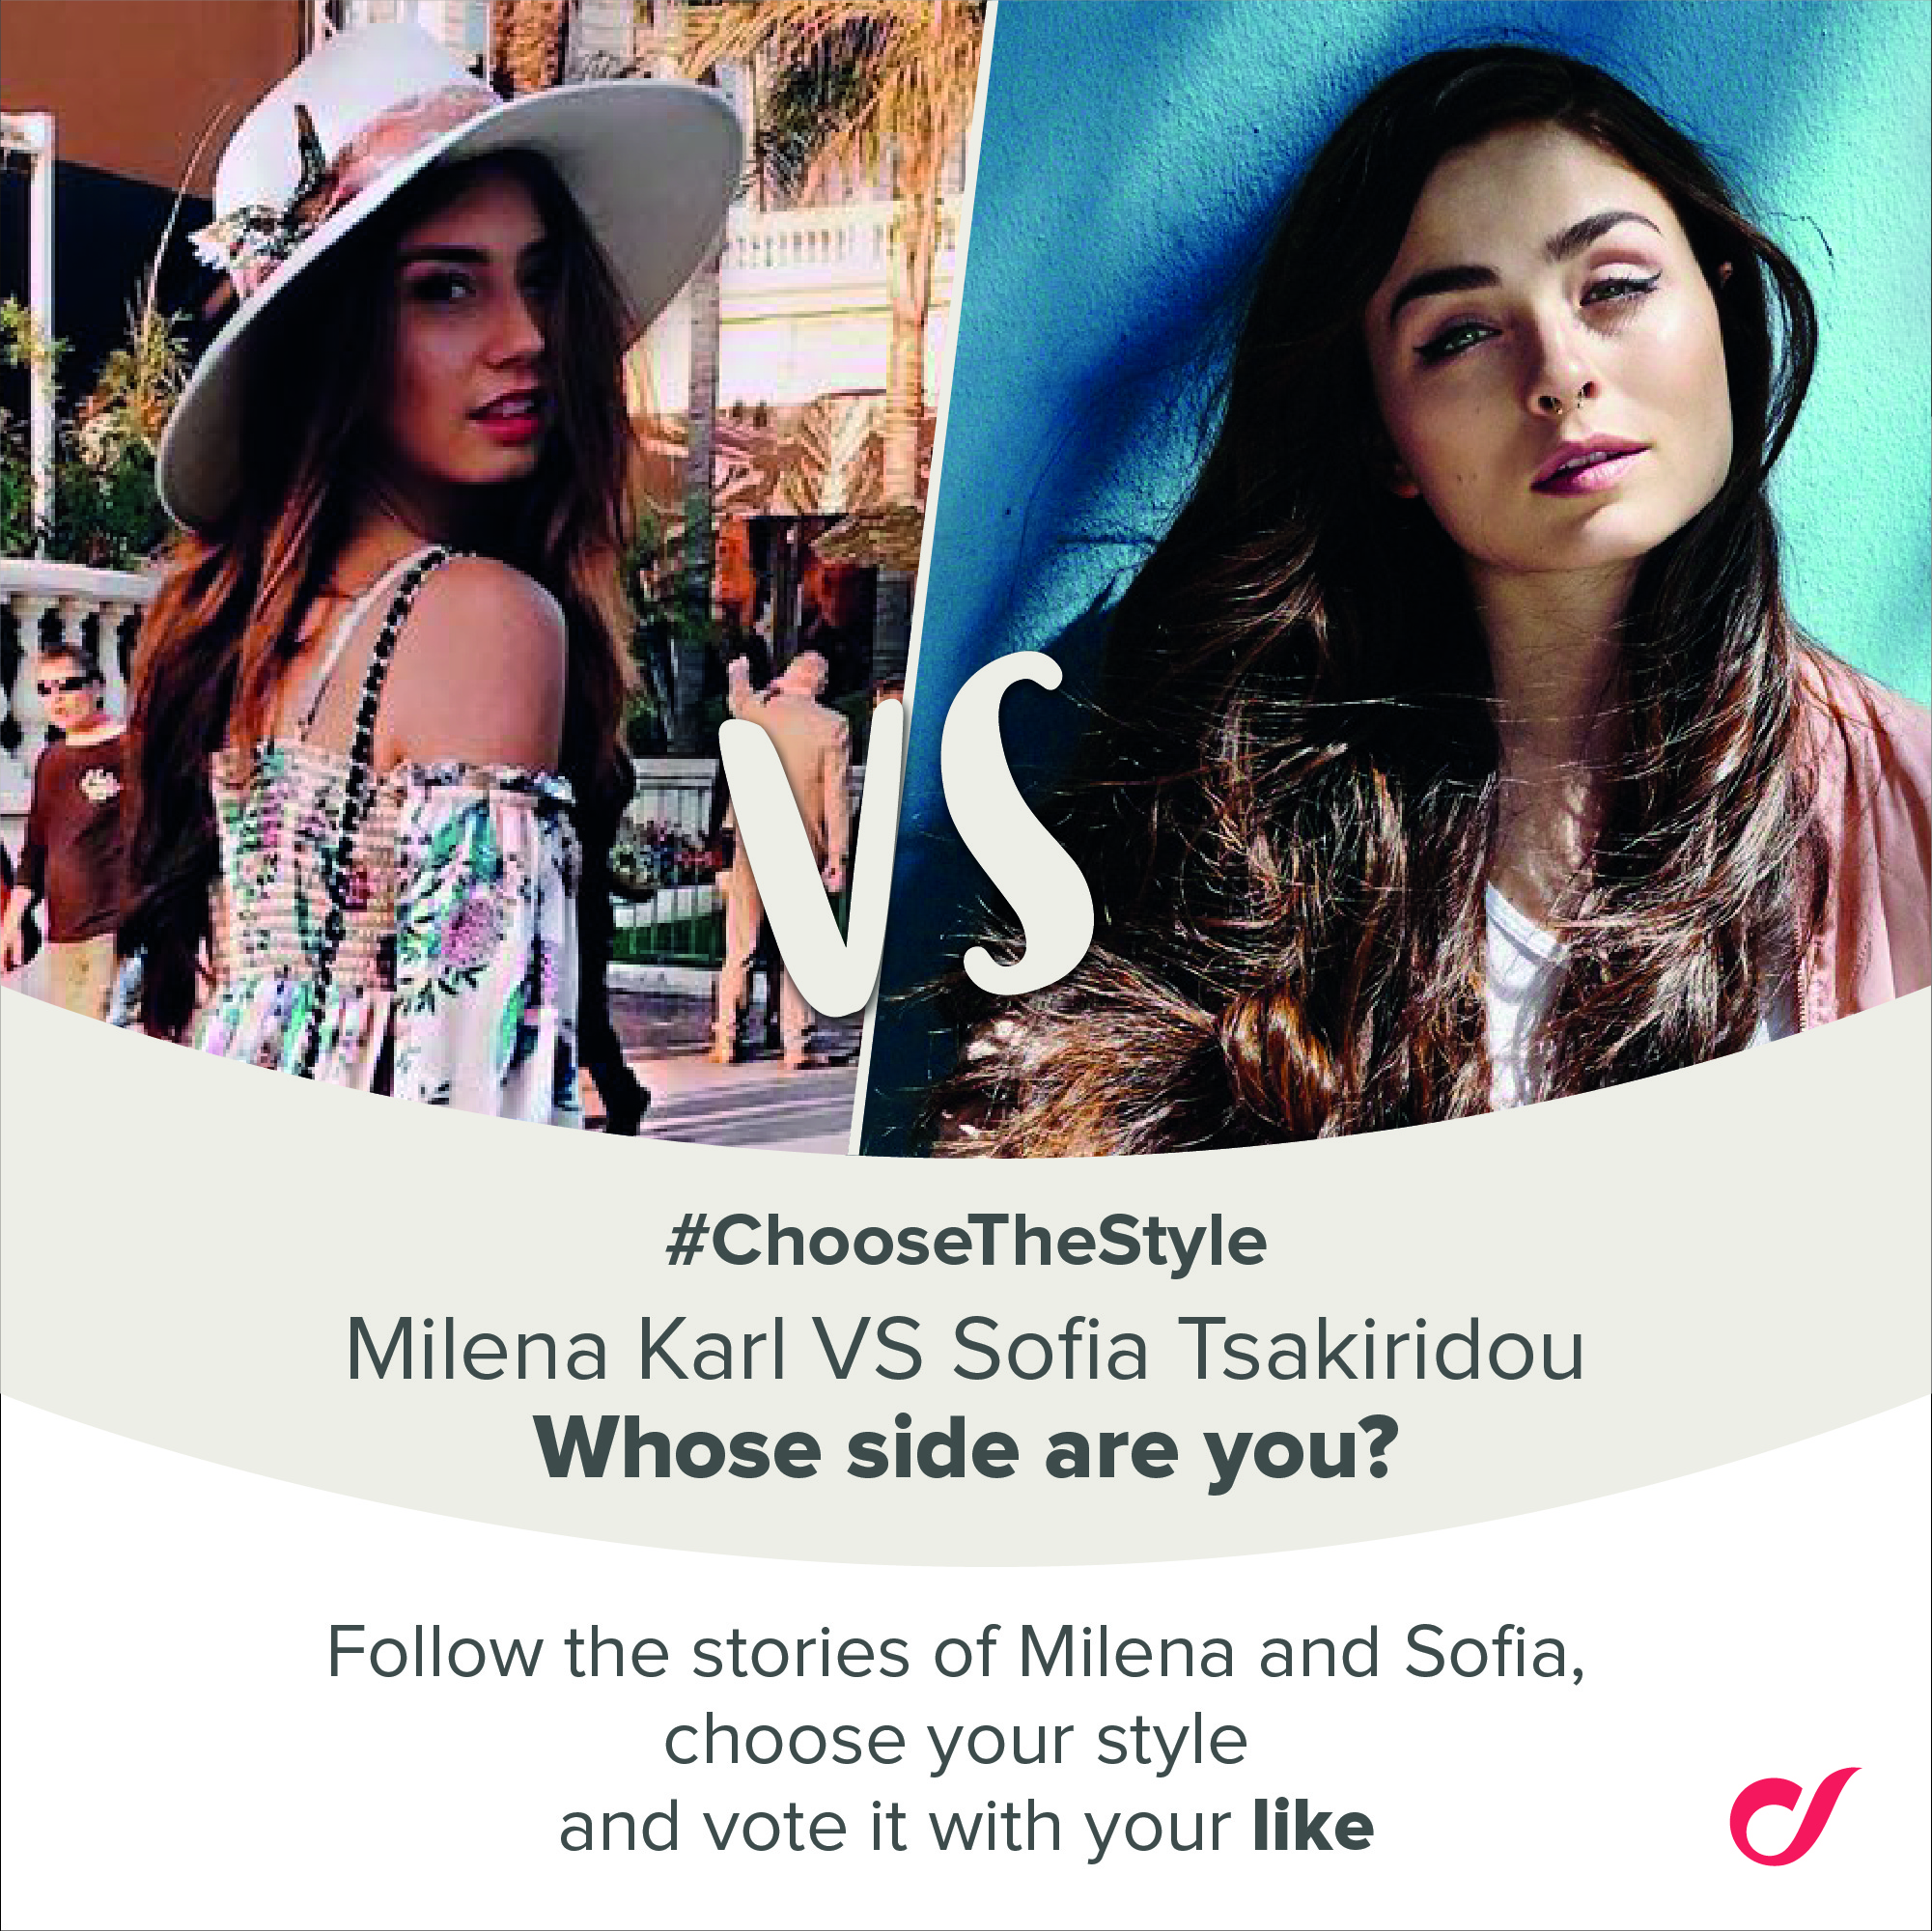 La campagna Cellularline continua in Germania. #ChooseTheStyle